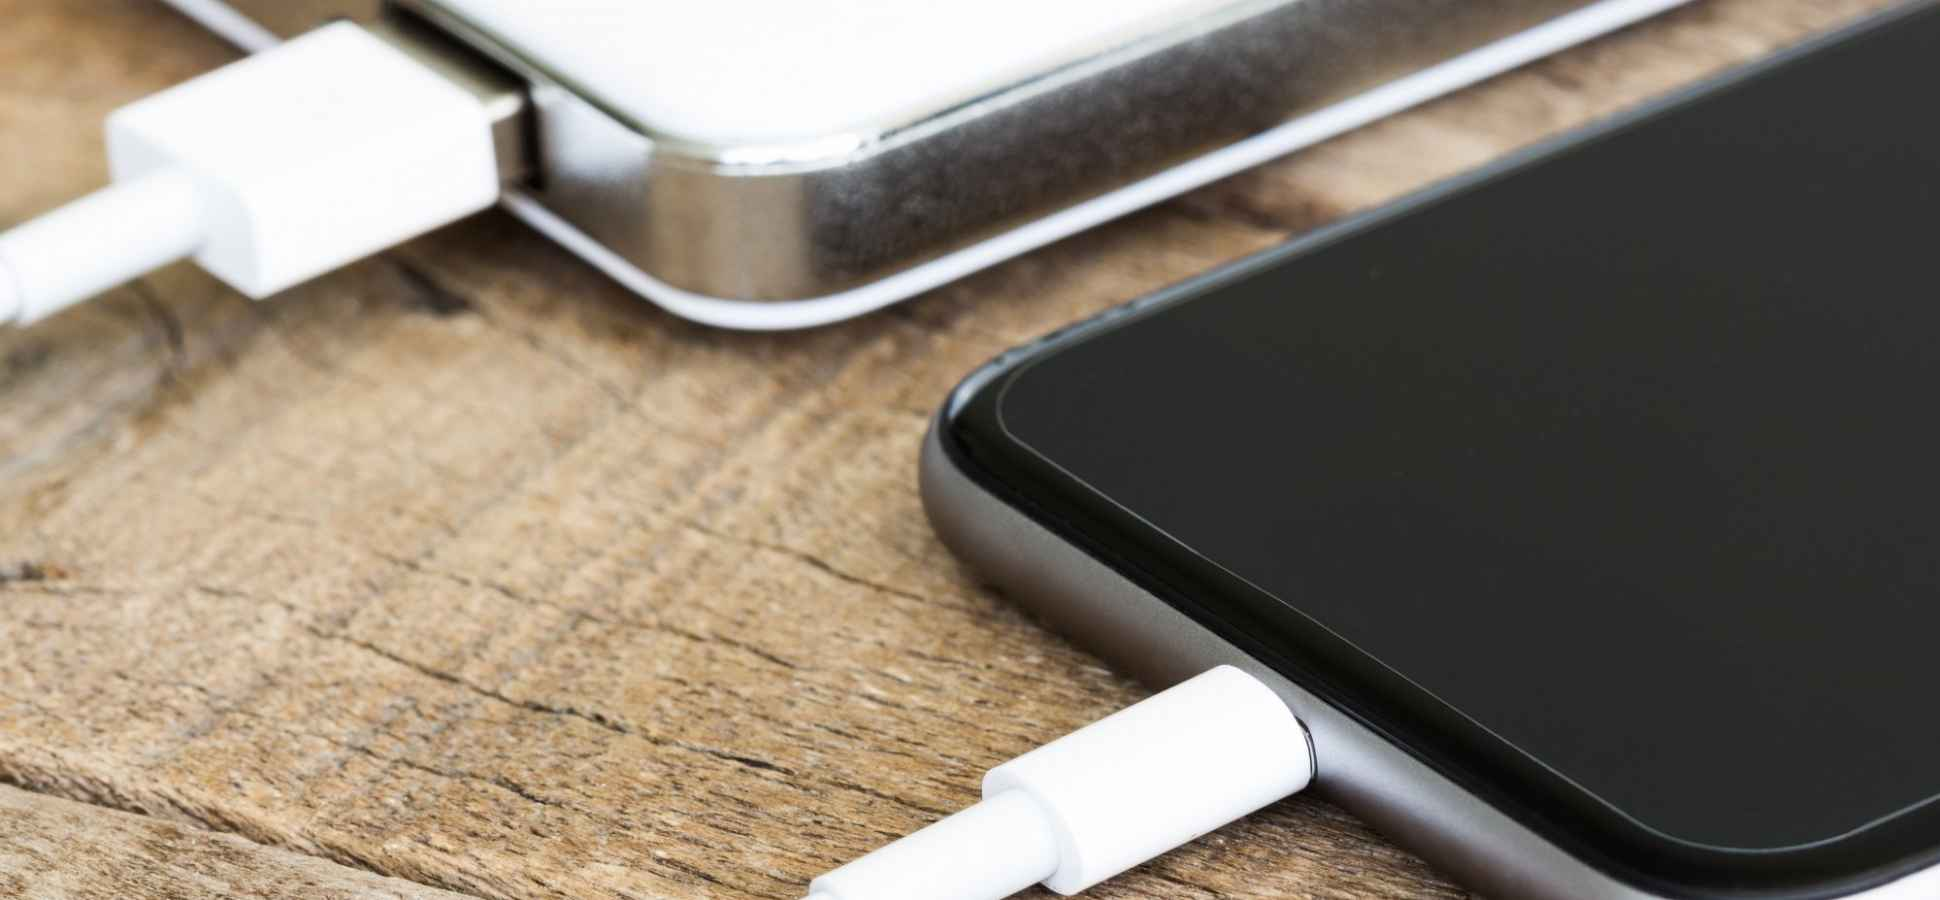 A PhD Student May Have Accidentally Found a Way to Make Your Phone Battery Last 400 Years